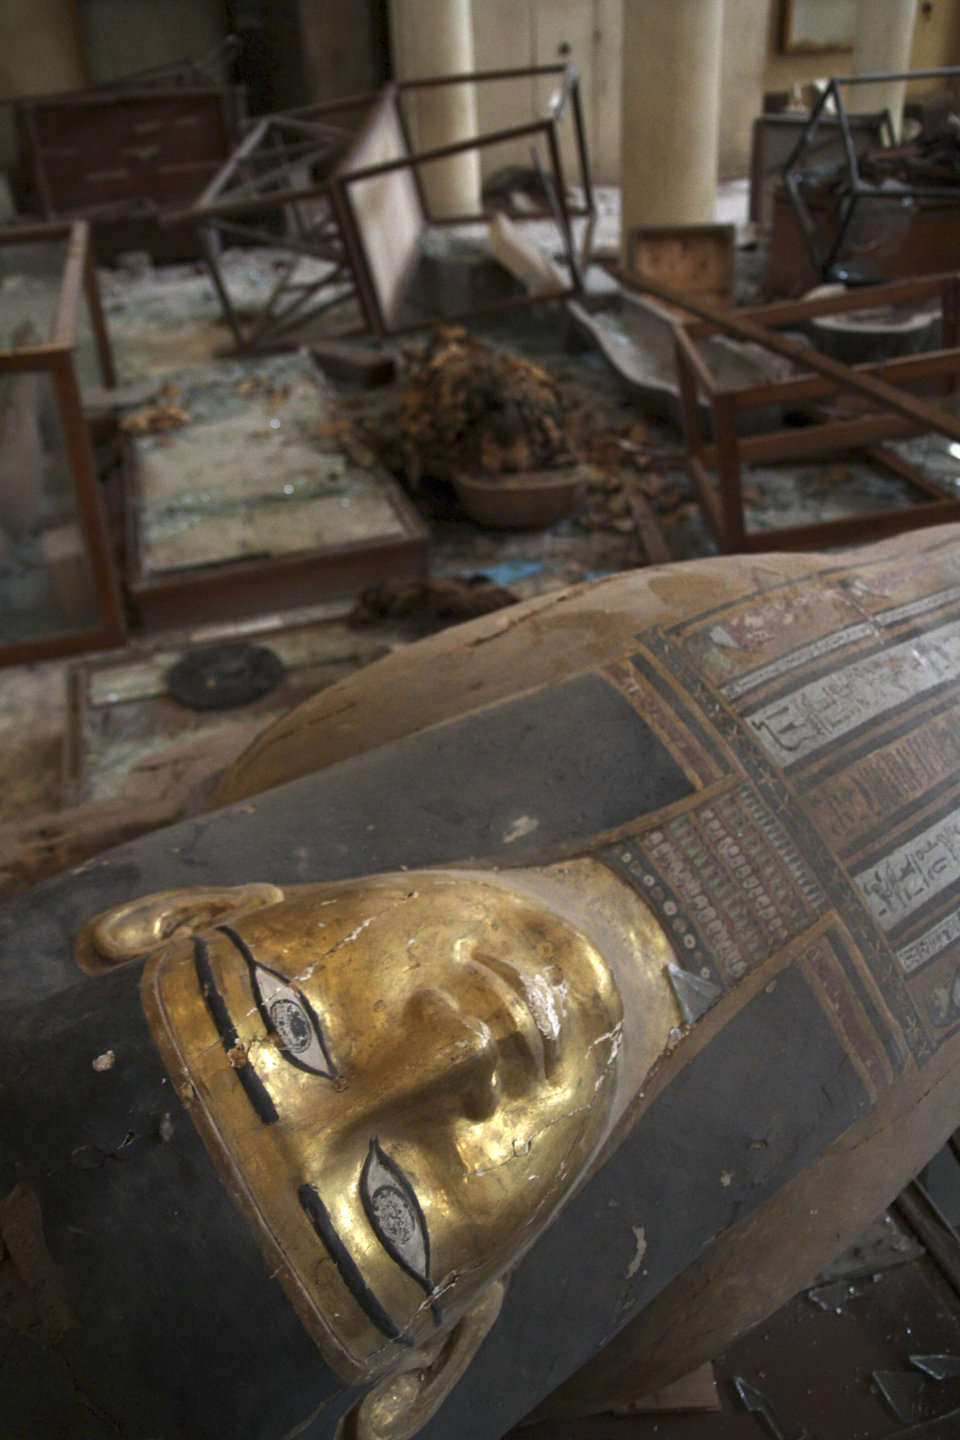 Damaged pharaonic objects lie on the floor of the Malawi Antiquities Museum after it was ransacked between the evening of 8/15 and the morning of 8/16 (Photo/Roger Anis, El Shorouk Newpaper)